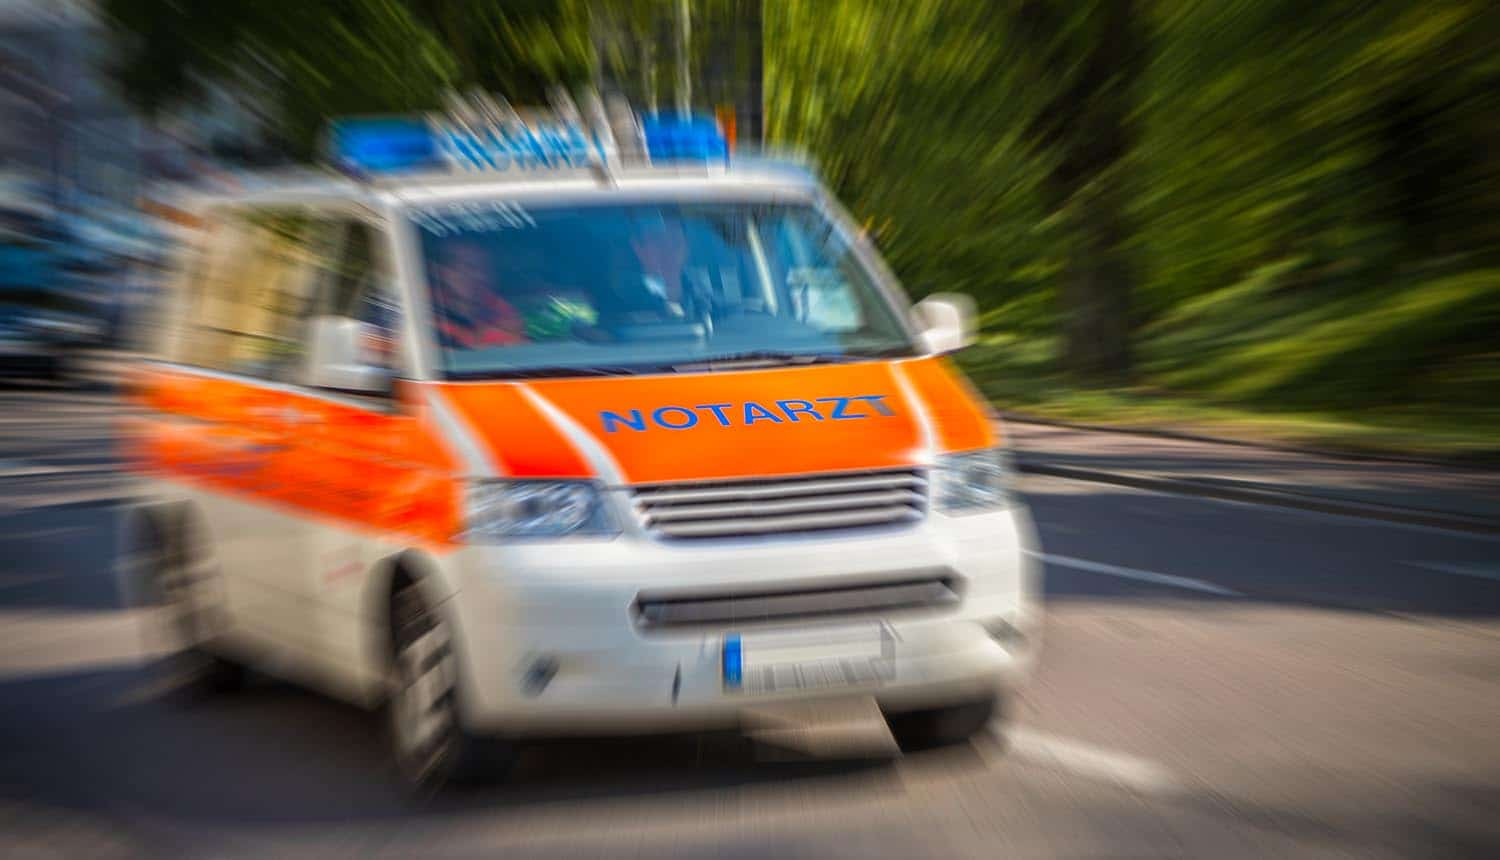 German emergency ambulance car drives on the street showing ransomware attack on German hospital